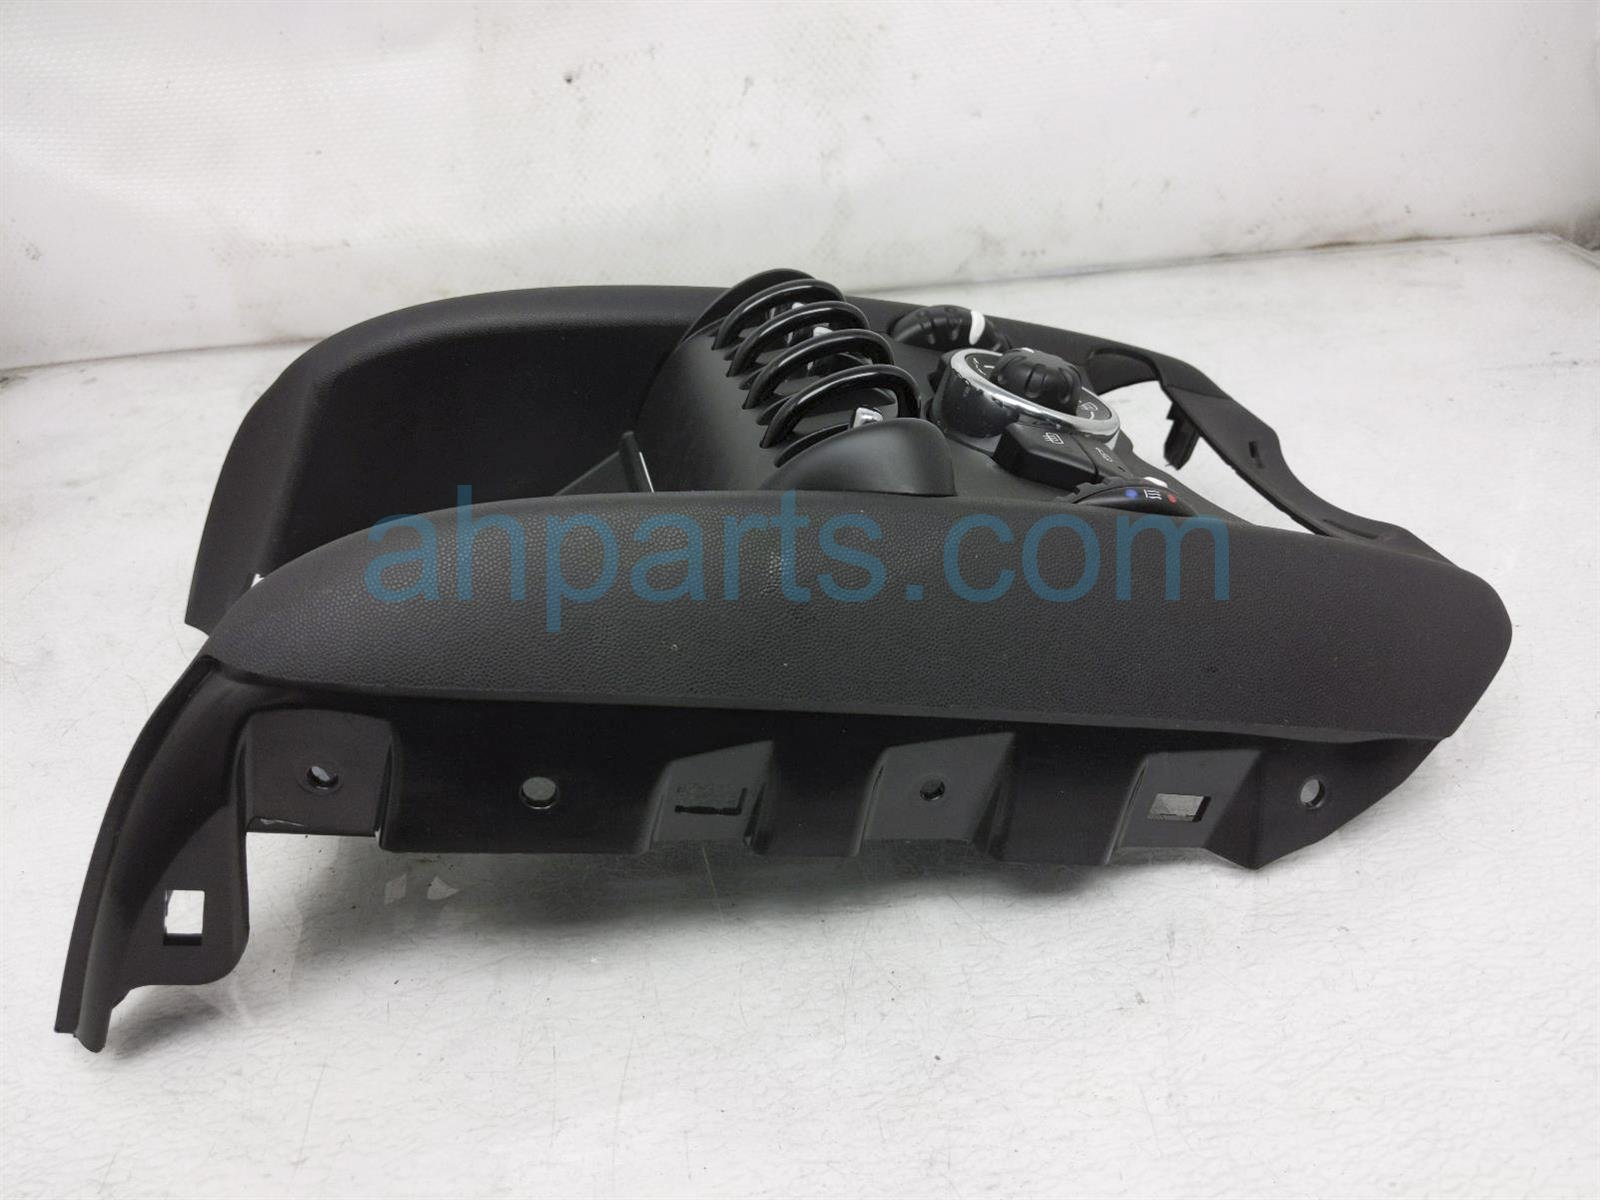 2014 BMW Clubman Minicooper Temperature / Ac Heater Climate Control Assy 64 11 3 457 397 Replacement